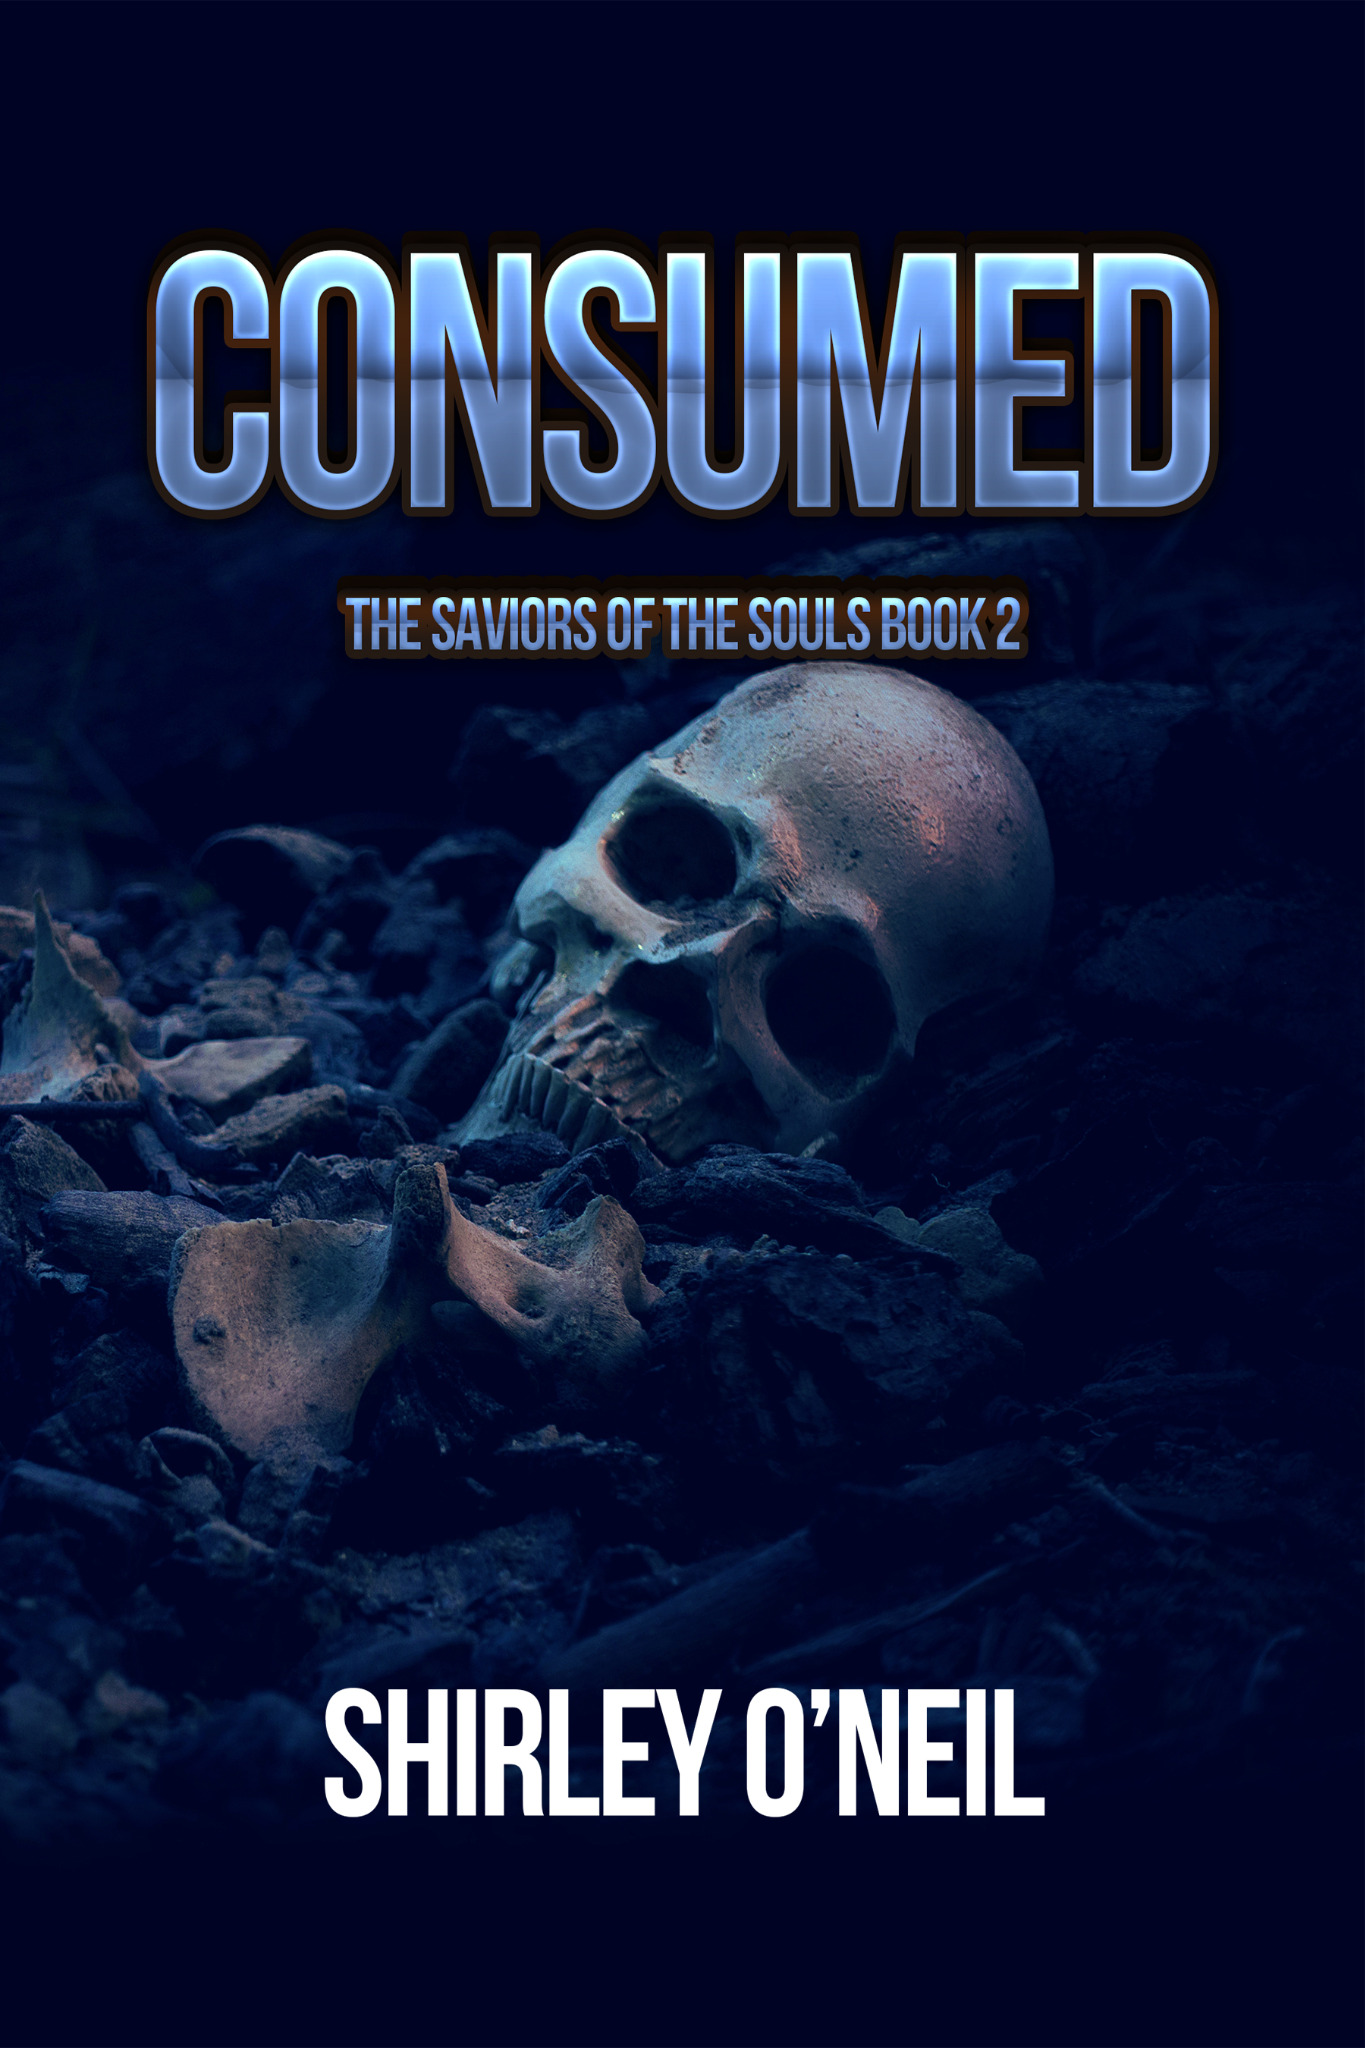 Consumed - The Saviors of the Souls Book 2